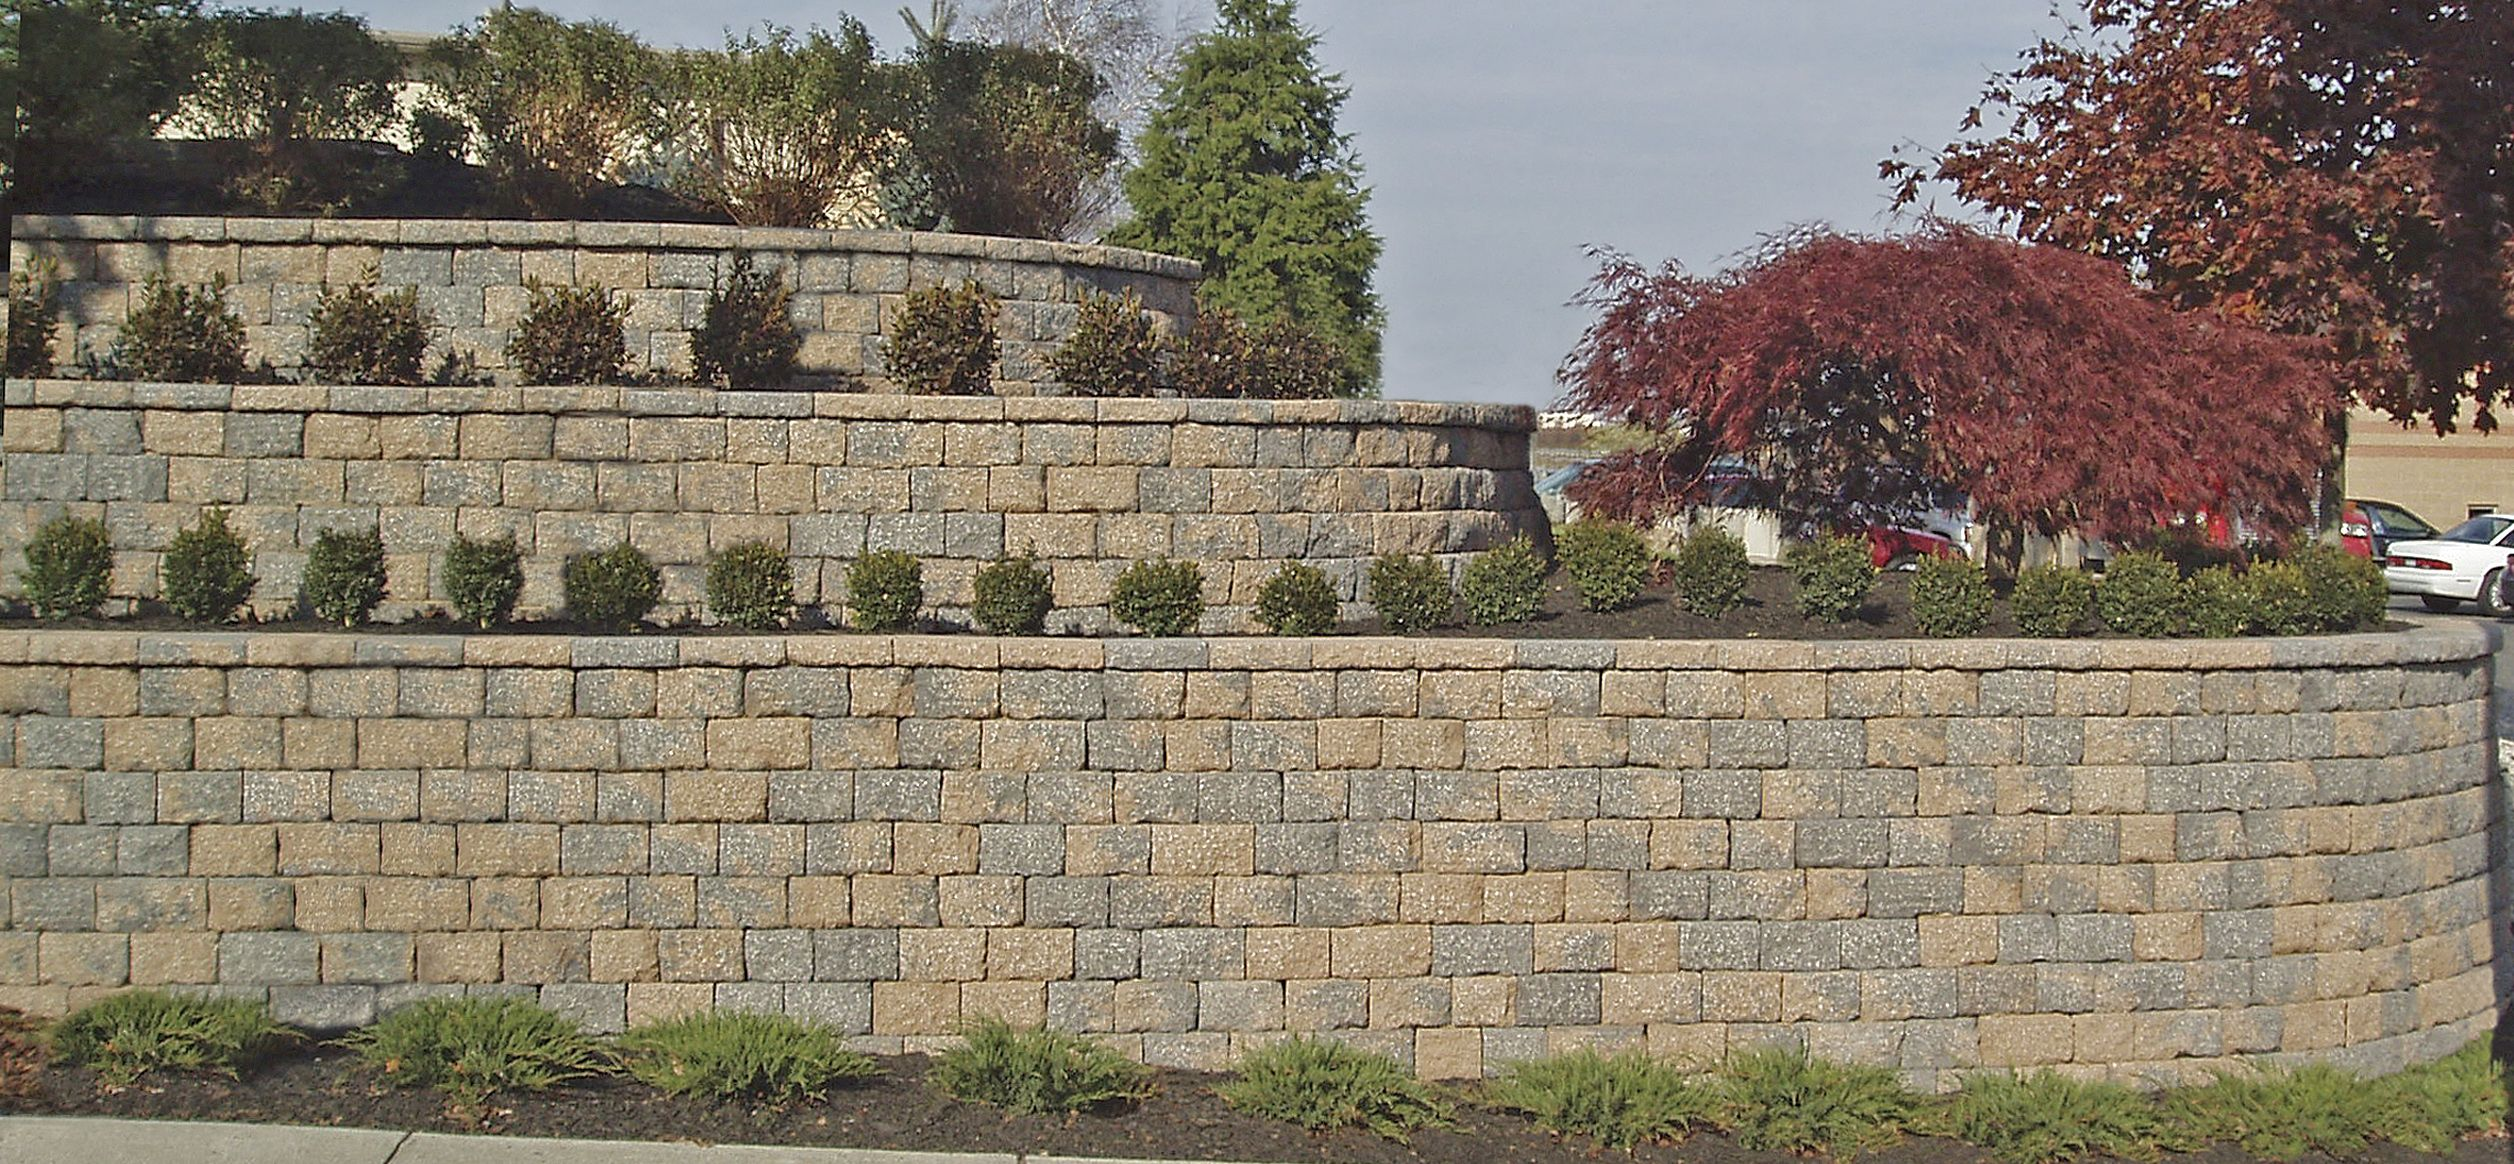 Retaining Wall Interlocking Blocks Retaining Wall Interlocking